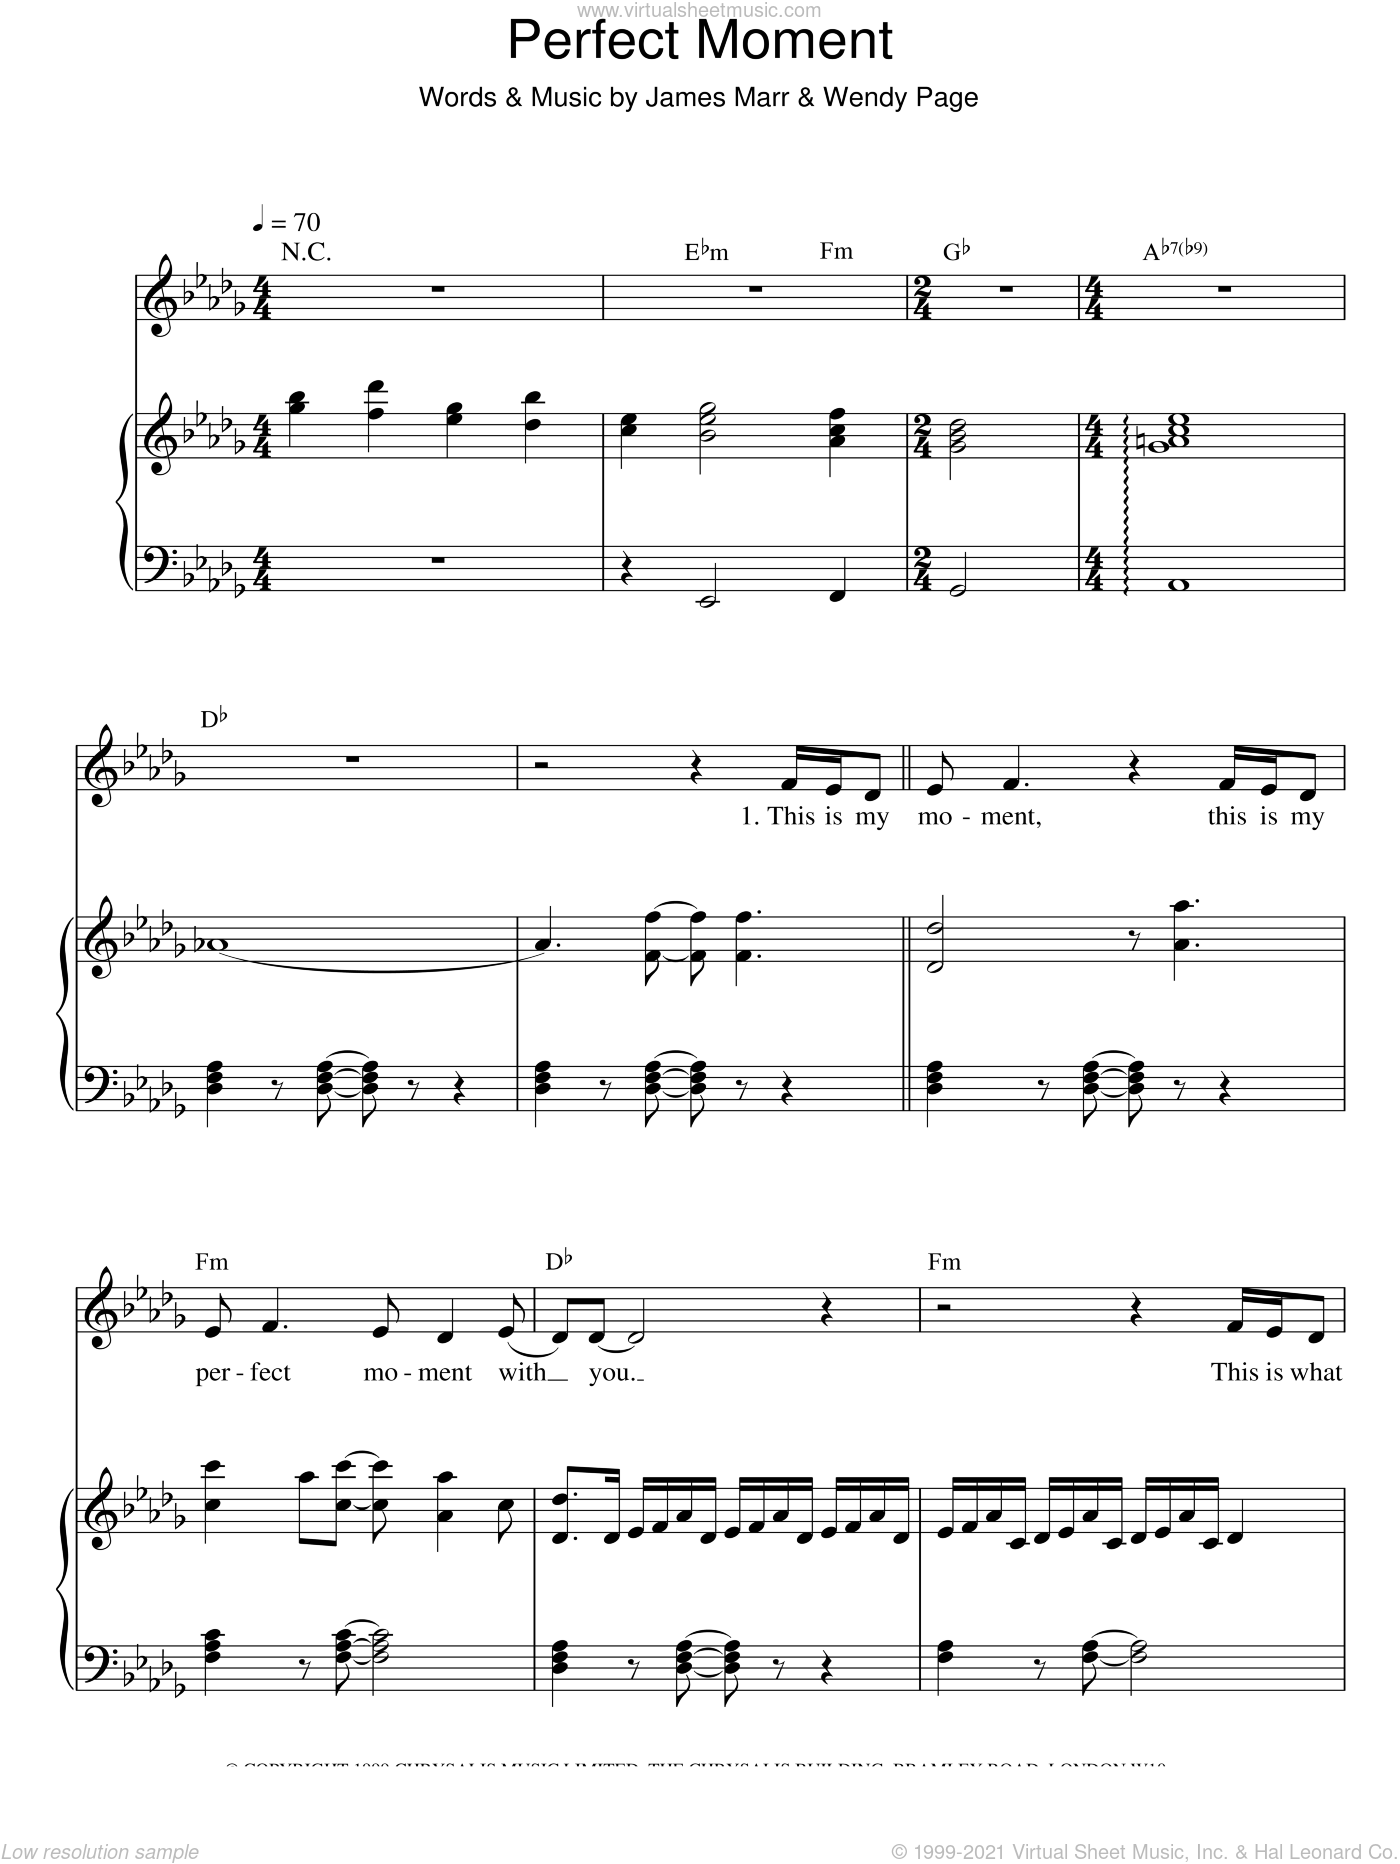 Perfect Moment sheet music for voice and piano by Wendy Page